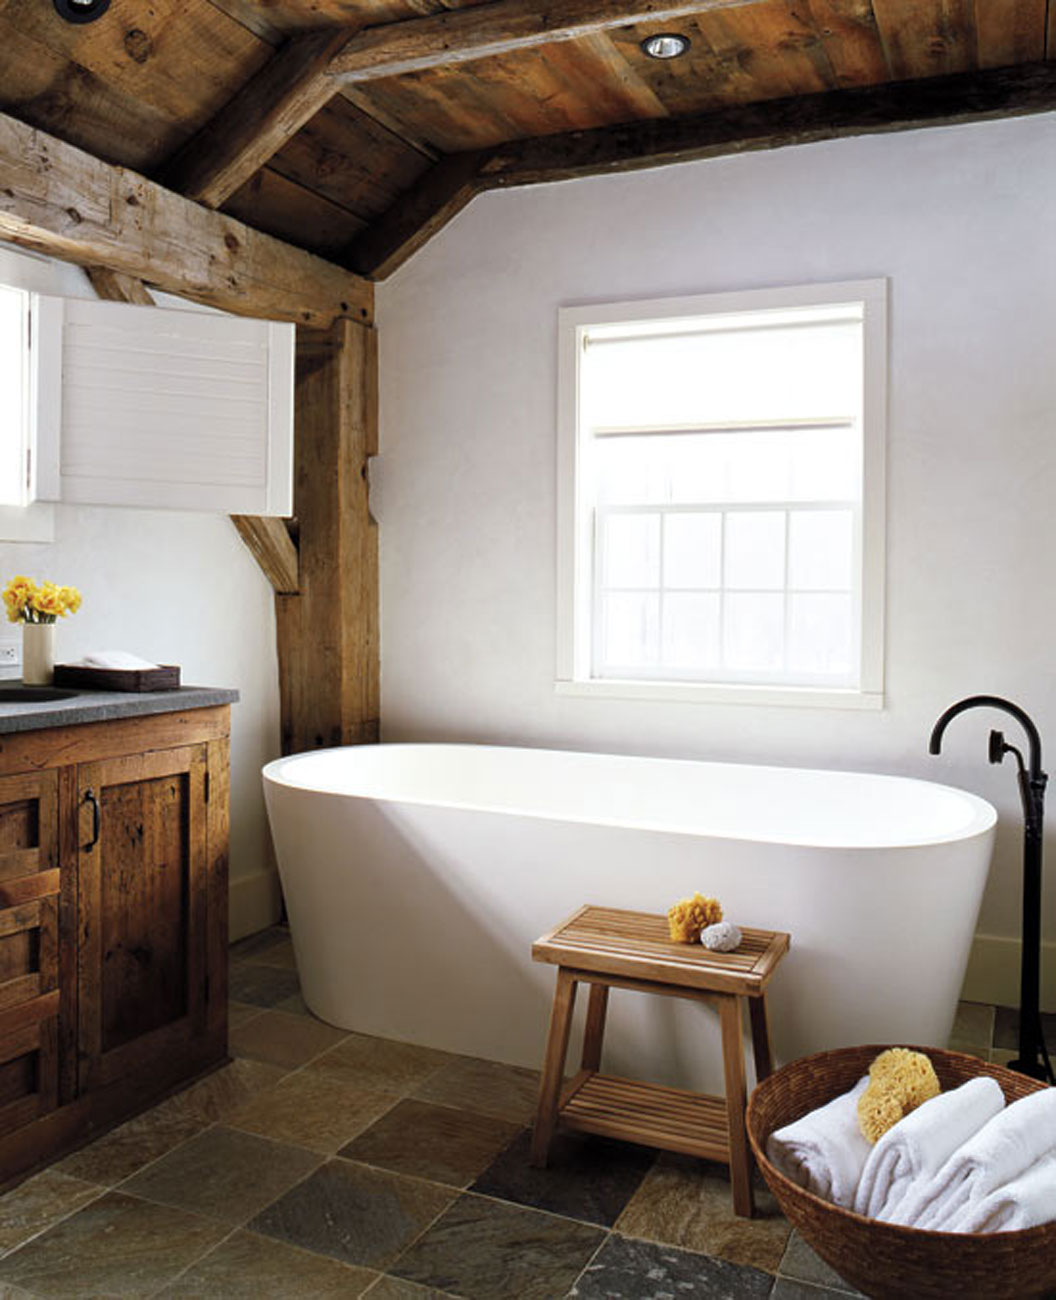 Contemporary House Design from a Barn with High Quality Wood Furniture - Bathroom